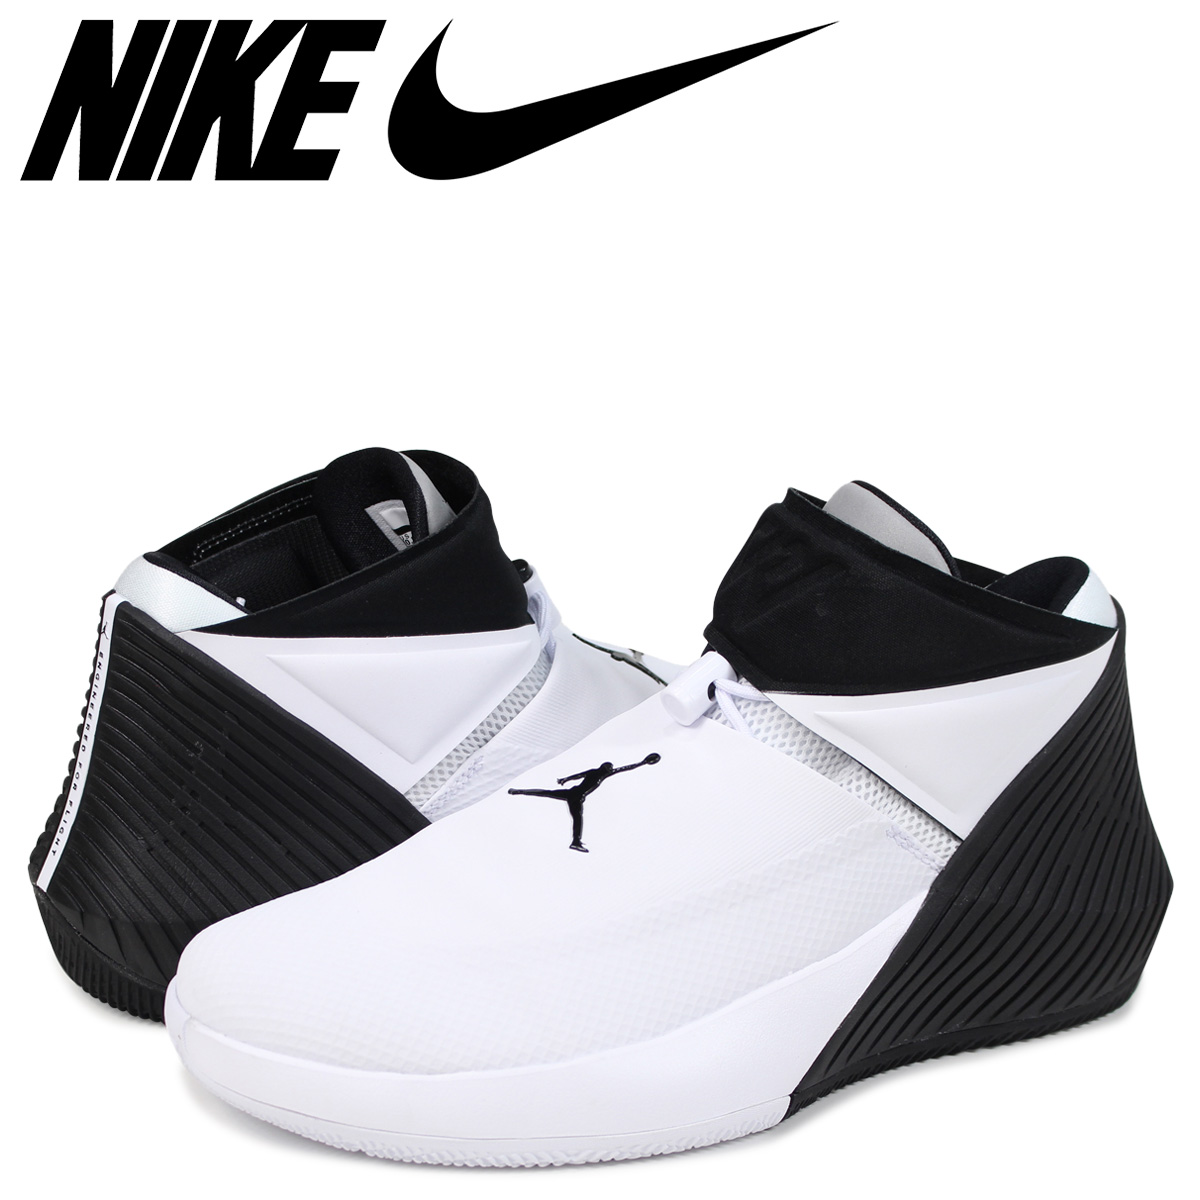 5802c5b4887 NIKE JORDAN WHY NOT ZER0.1 EP Nike Jordan sneakers men AO1041-110 white ...